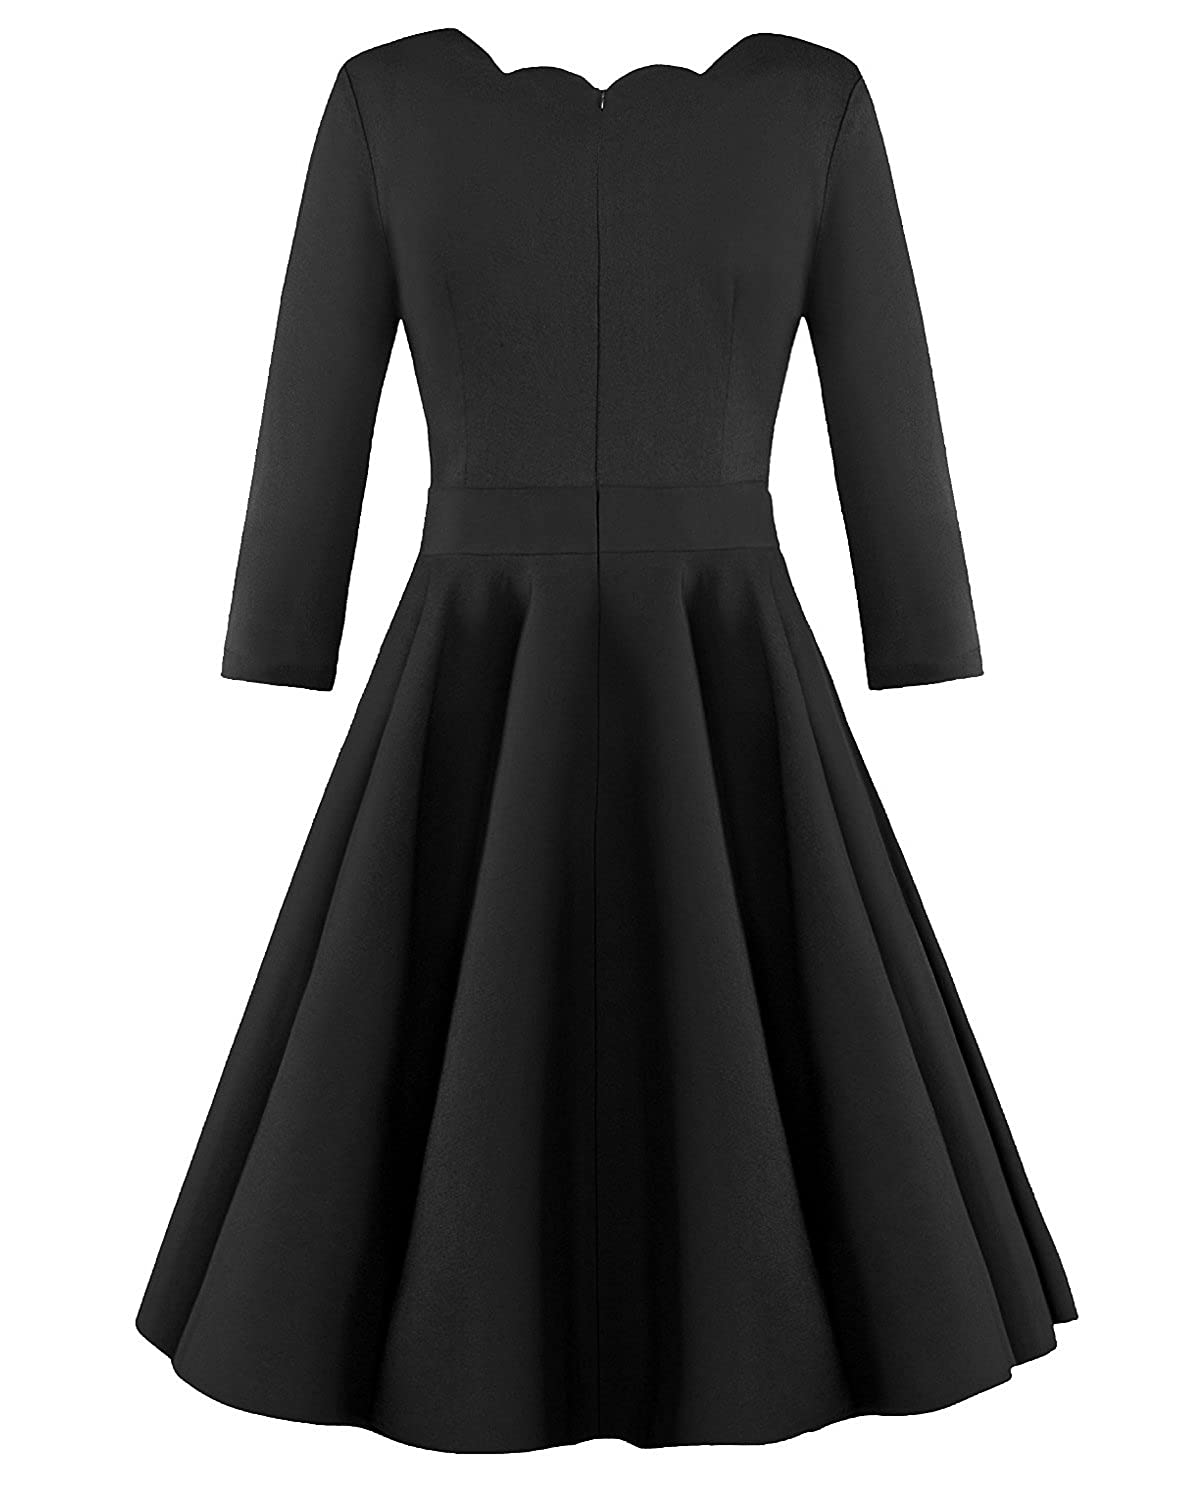 OUGES Womens 1950s Scalloped Neck Vintage Cocktail Dress at Amazon Women's  Clothing store: